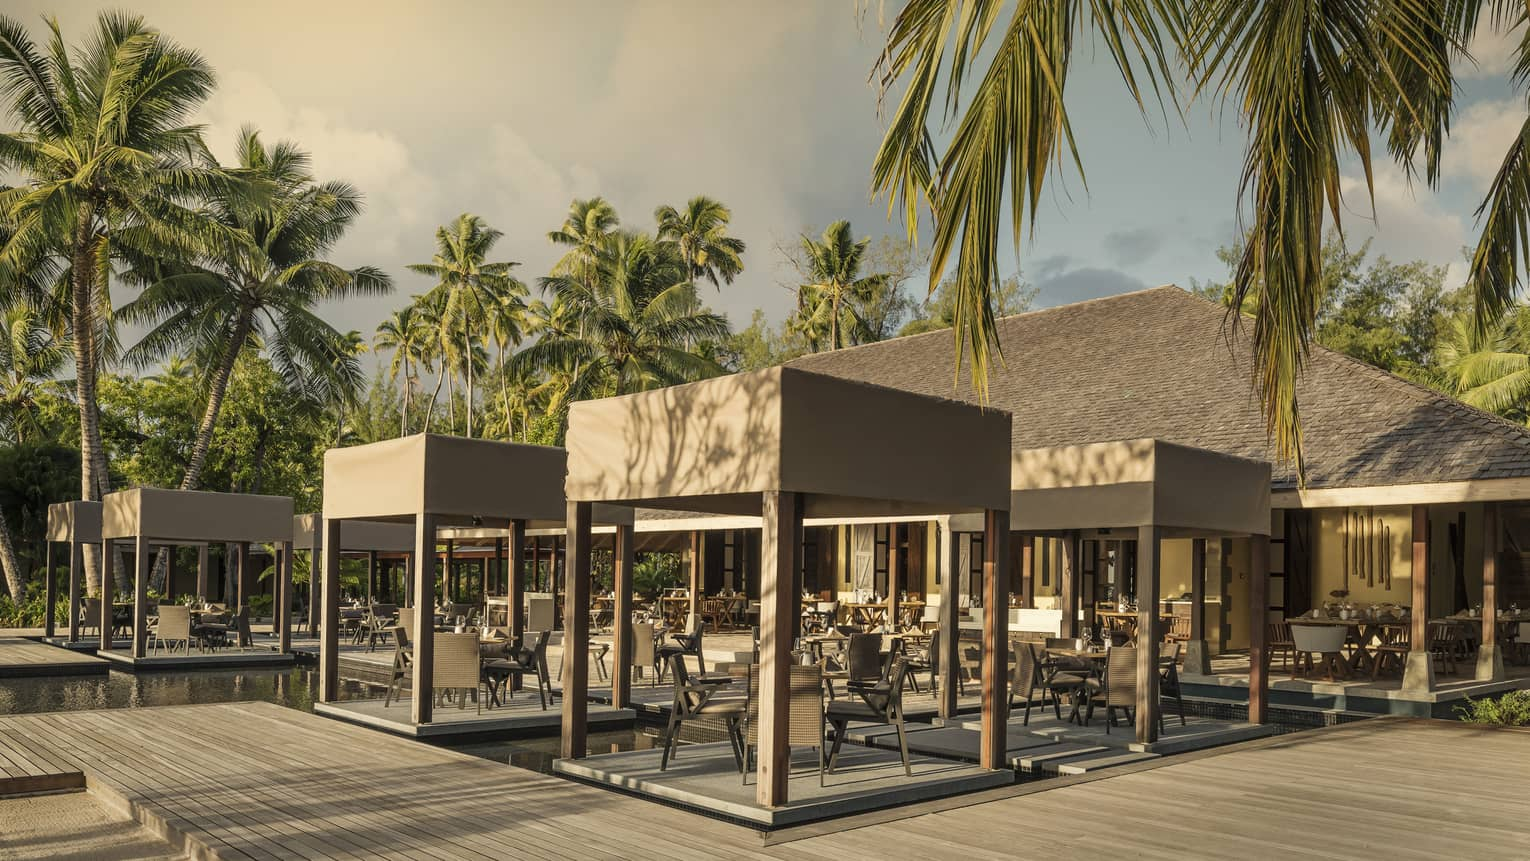 Outdoor Claudine restaurant with tables on decks over water, covered with wooden canopy